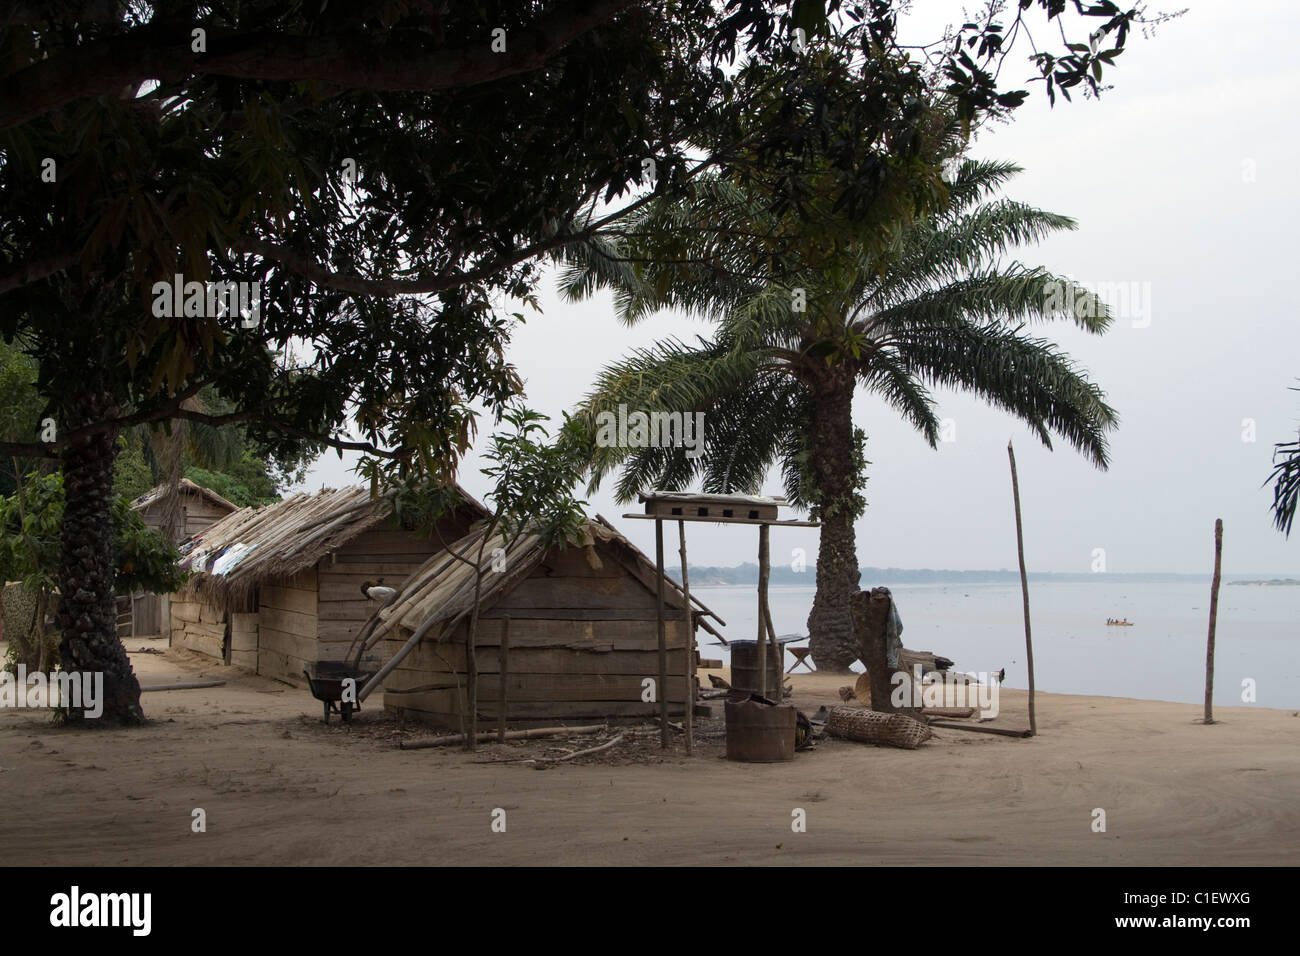 Ubangi River ,Betou ,Republic of the Congo - Stock Image